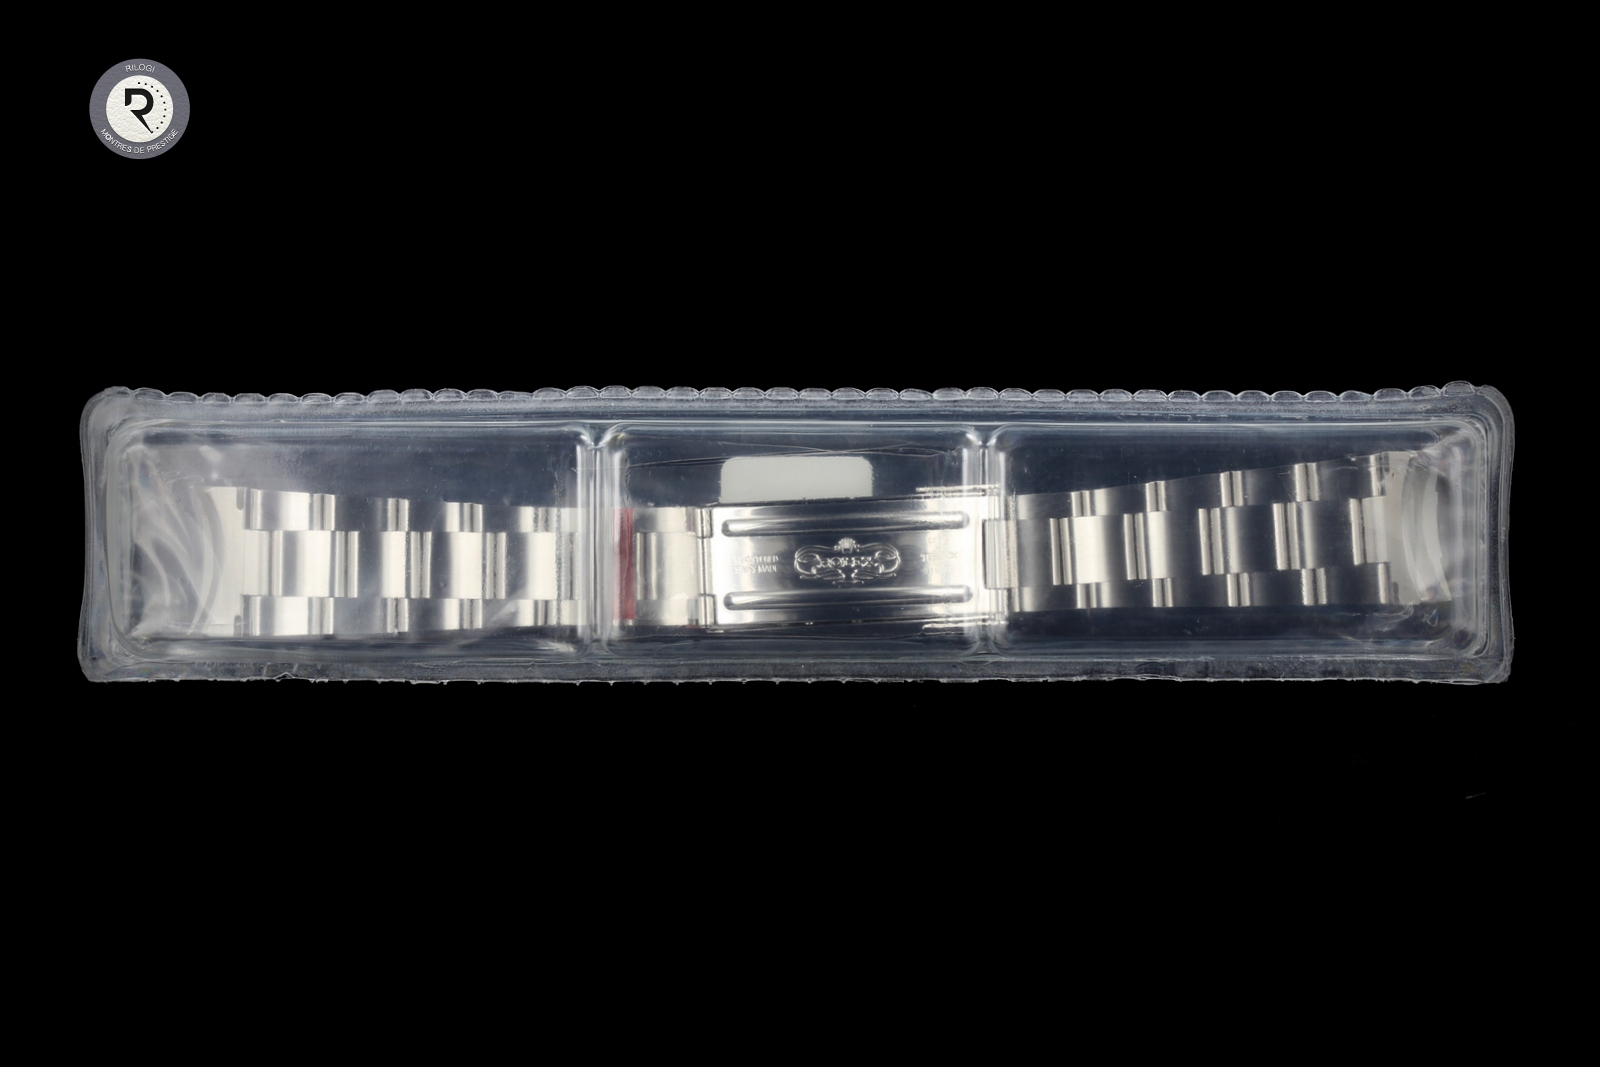 BRACELET 93160A -  ON REQUEST